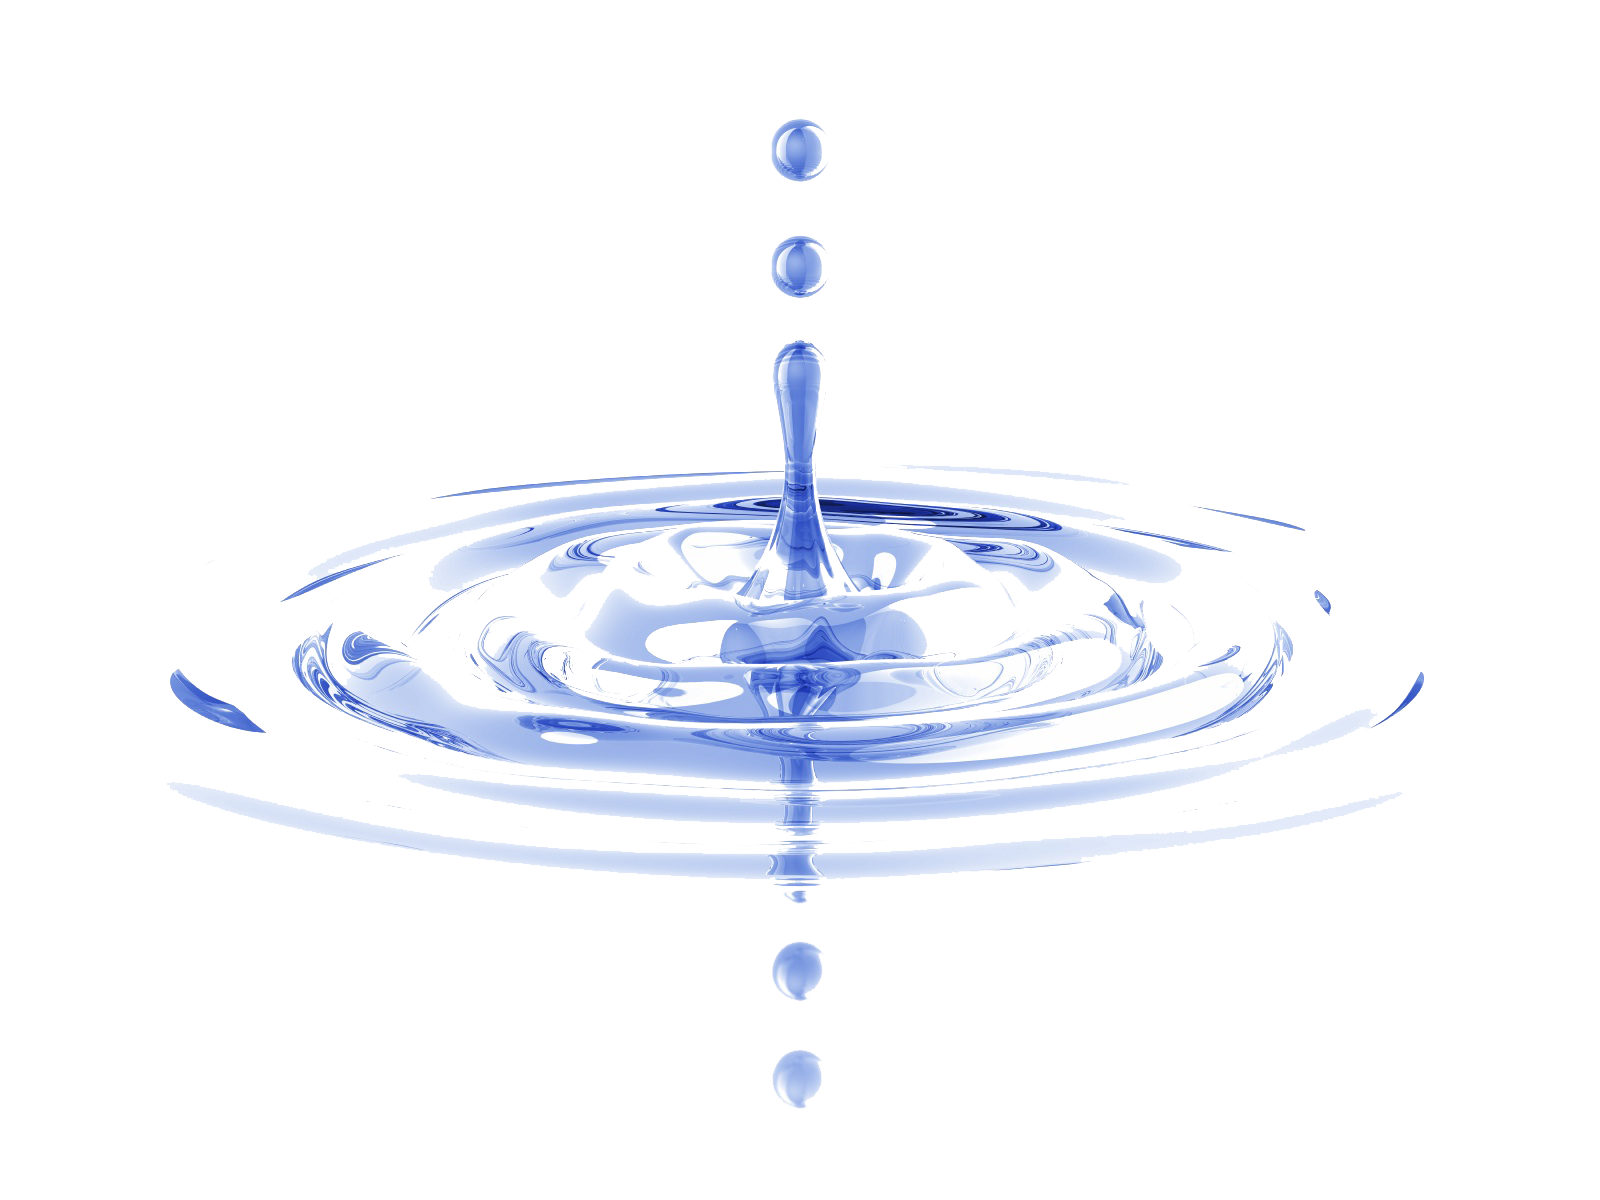 Drawing fluid pond ripple. Water ripples png transparent